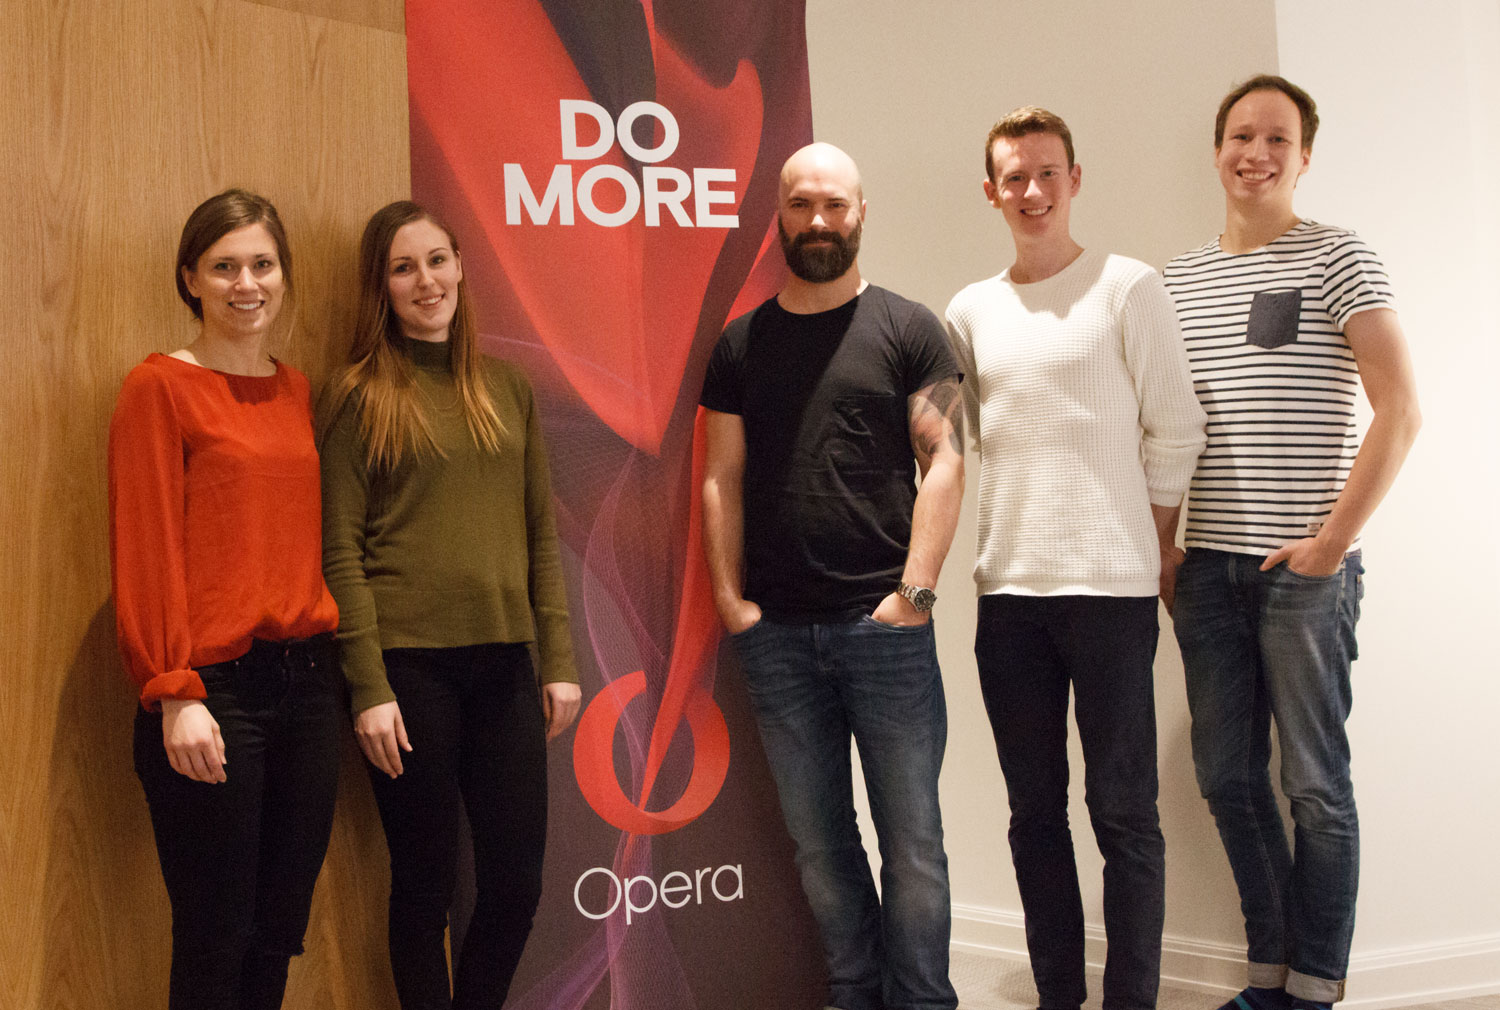 From left to right: Hanna Björk (Opera), Matilda, Niklas Beischer (Opera), Daniel and Hampus.